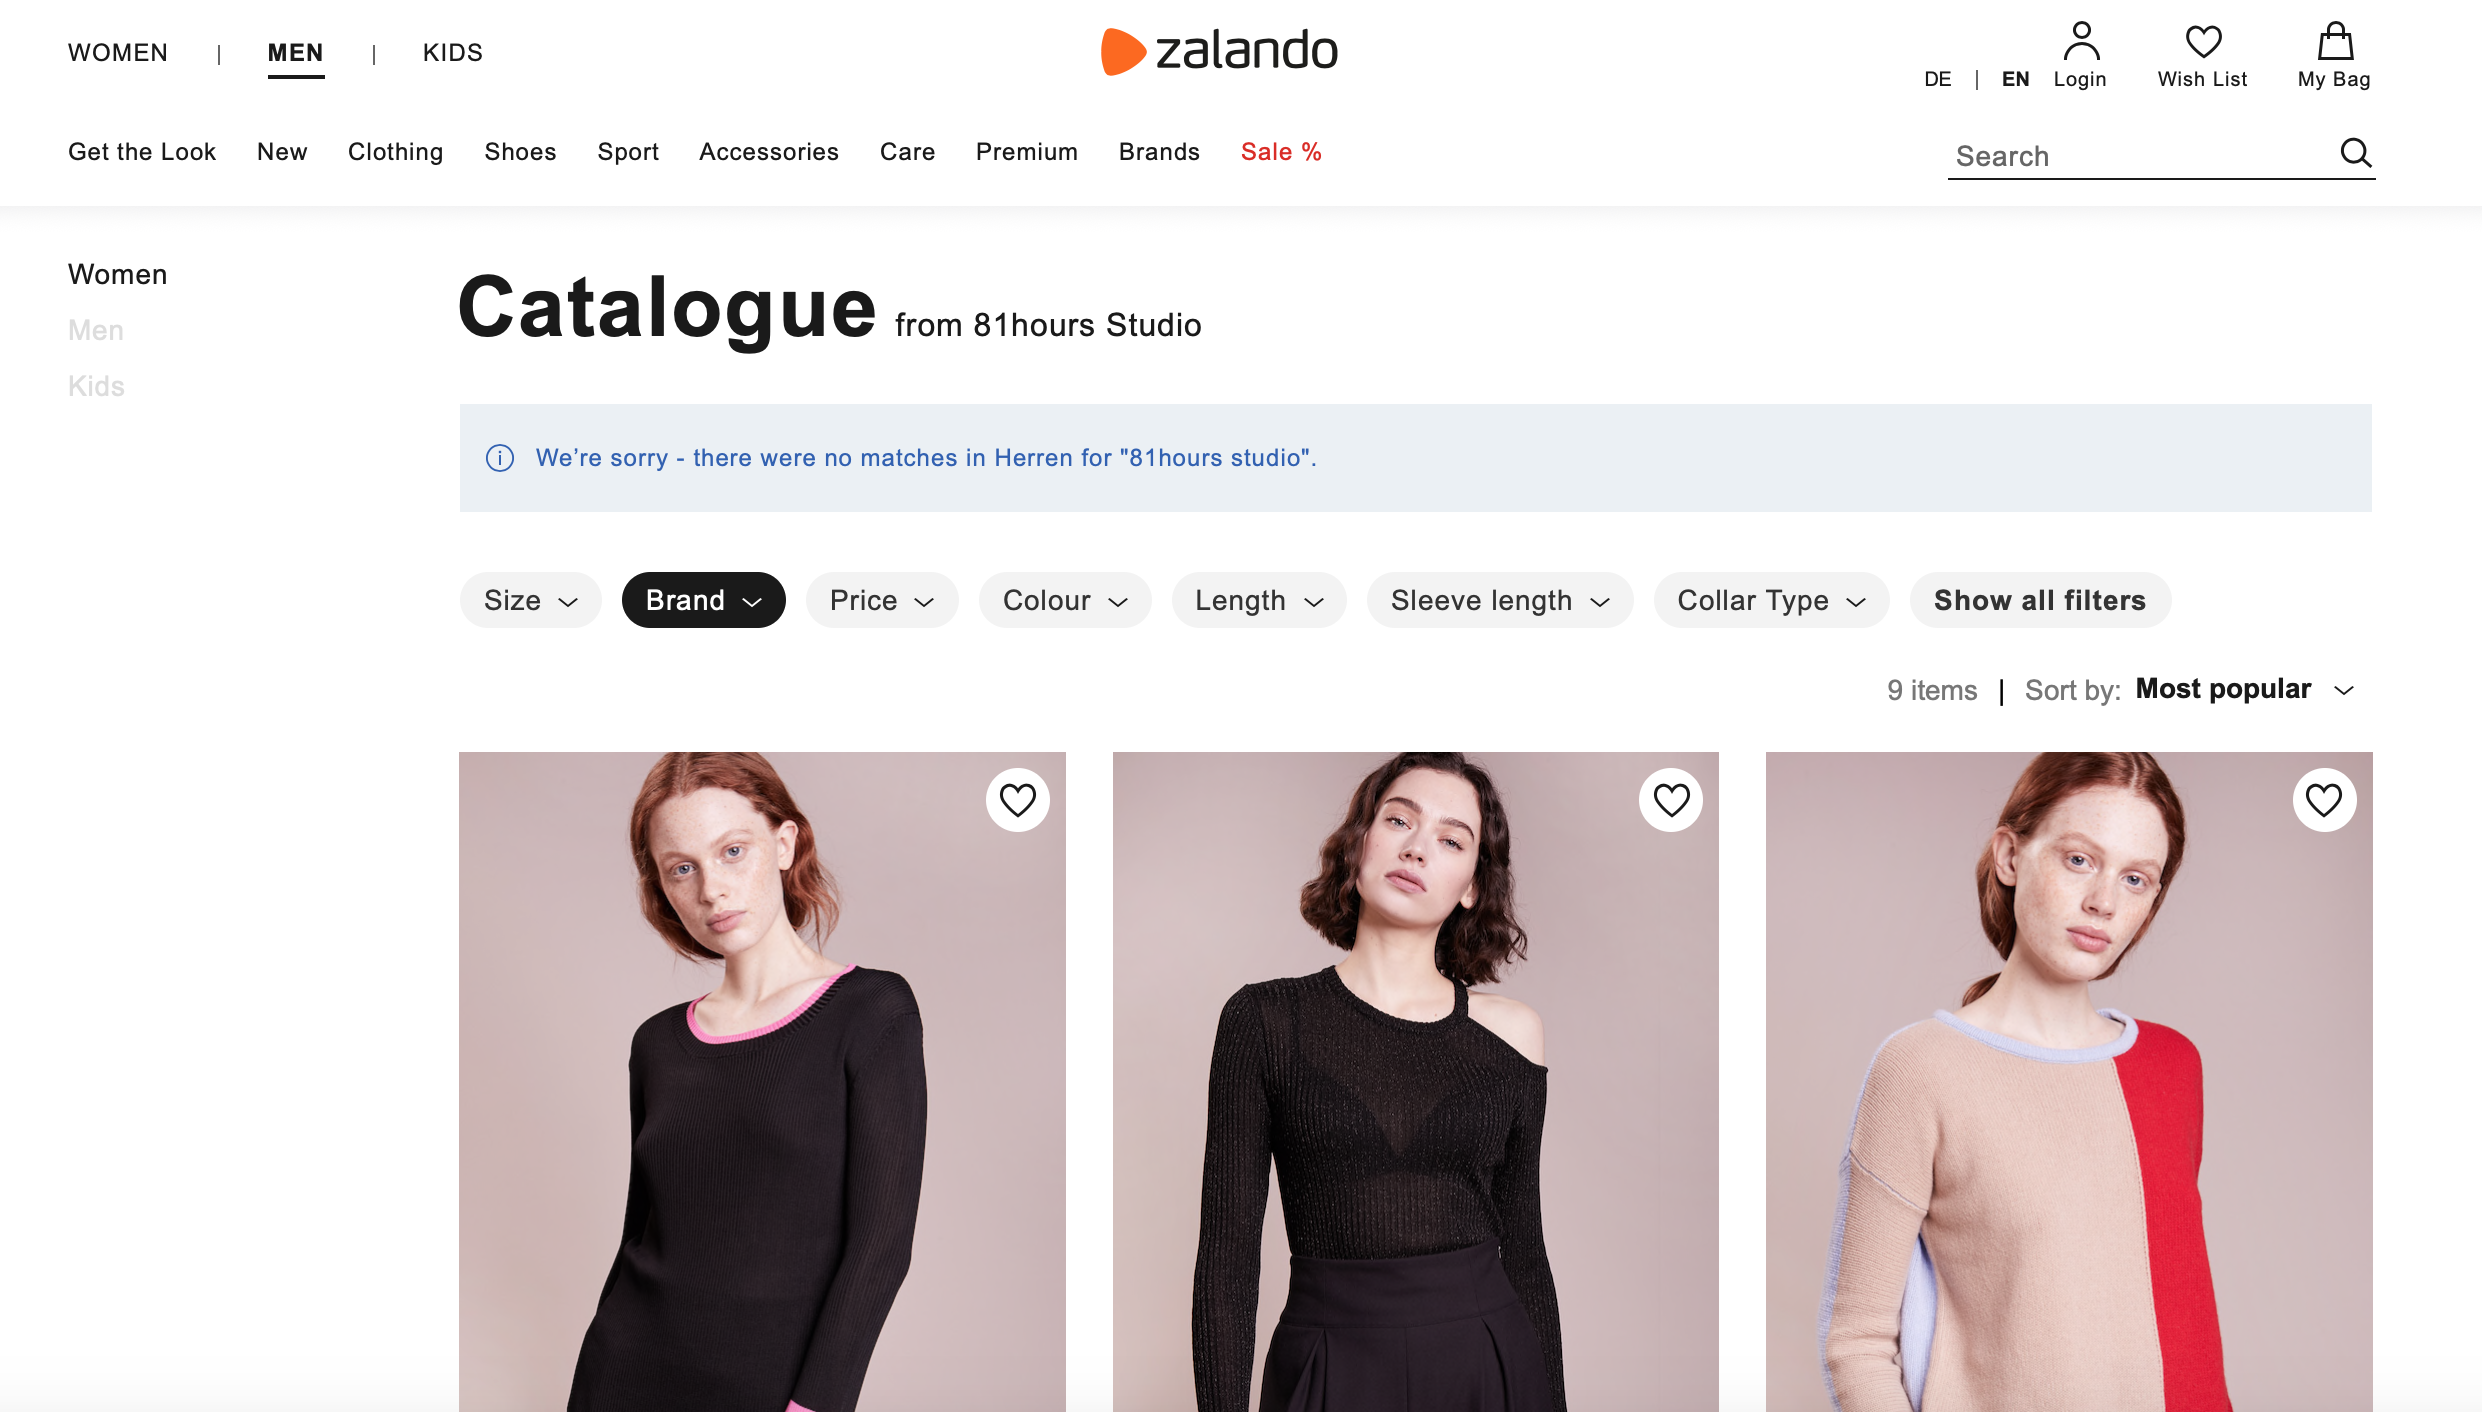 ZALANDO X 81HOURS - Collection Design and DevelopmentSPECIAL SALES CAPSULE COLLECTION